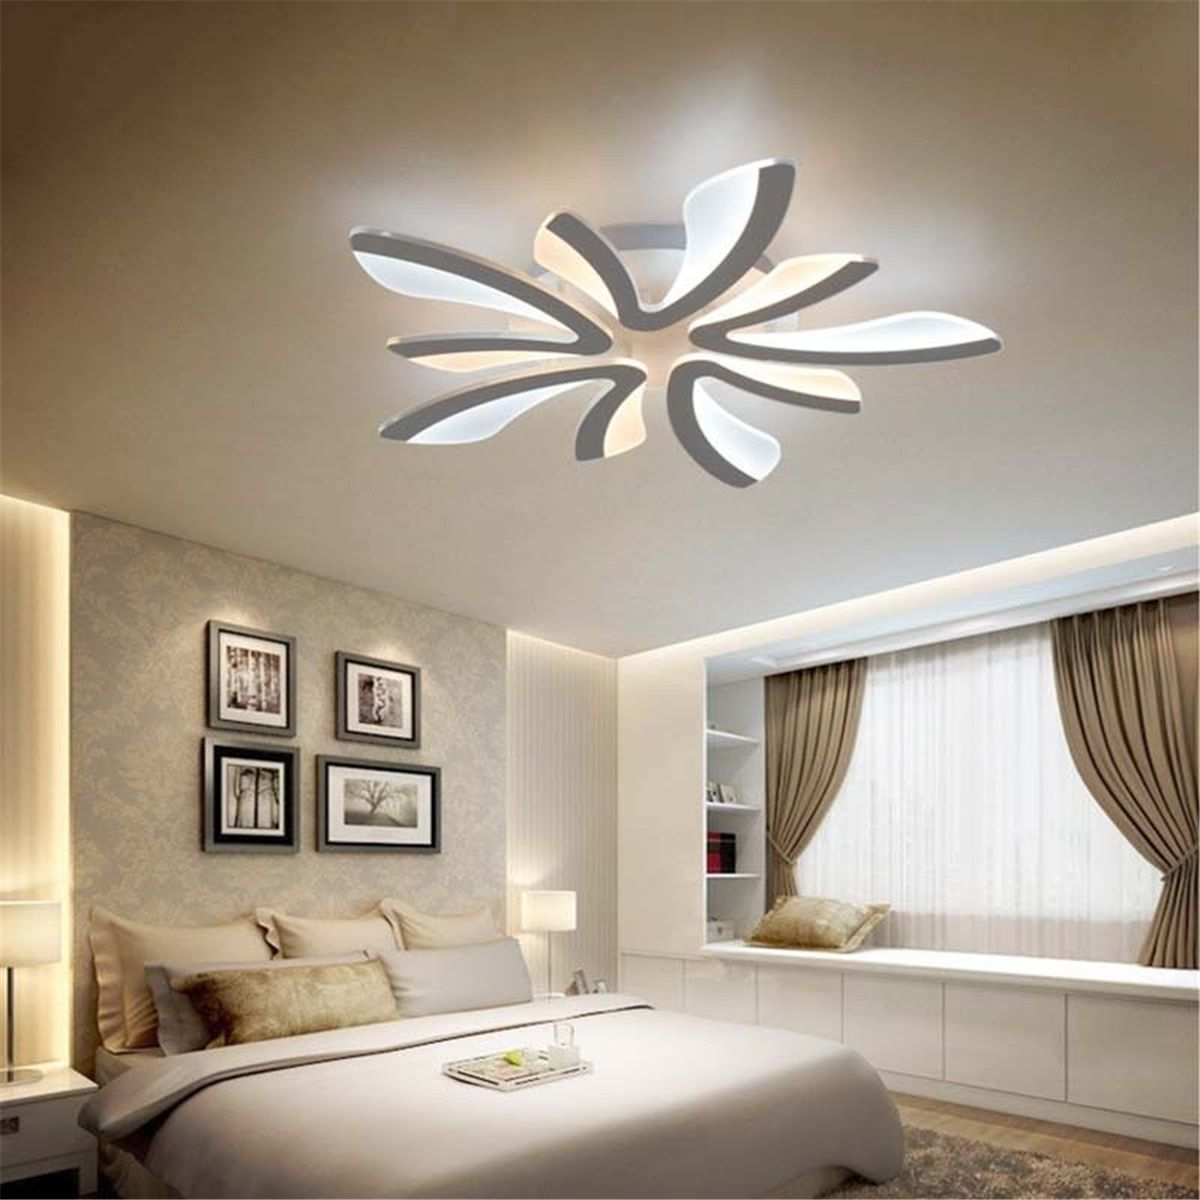 Home Chandelier In Living Room Ceiling Lights Ceiling Pendant